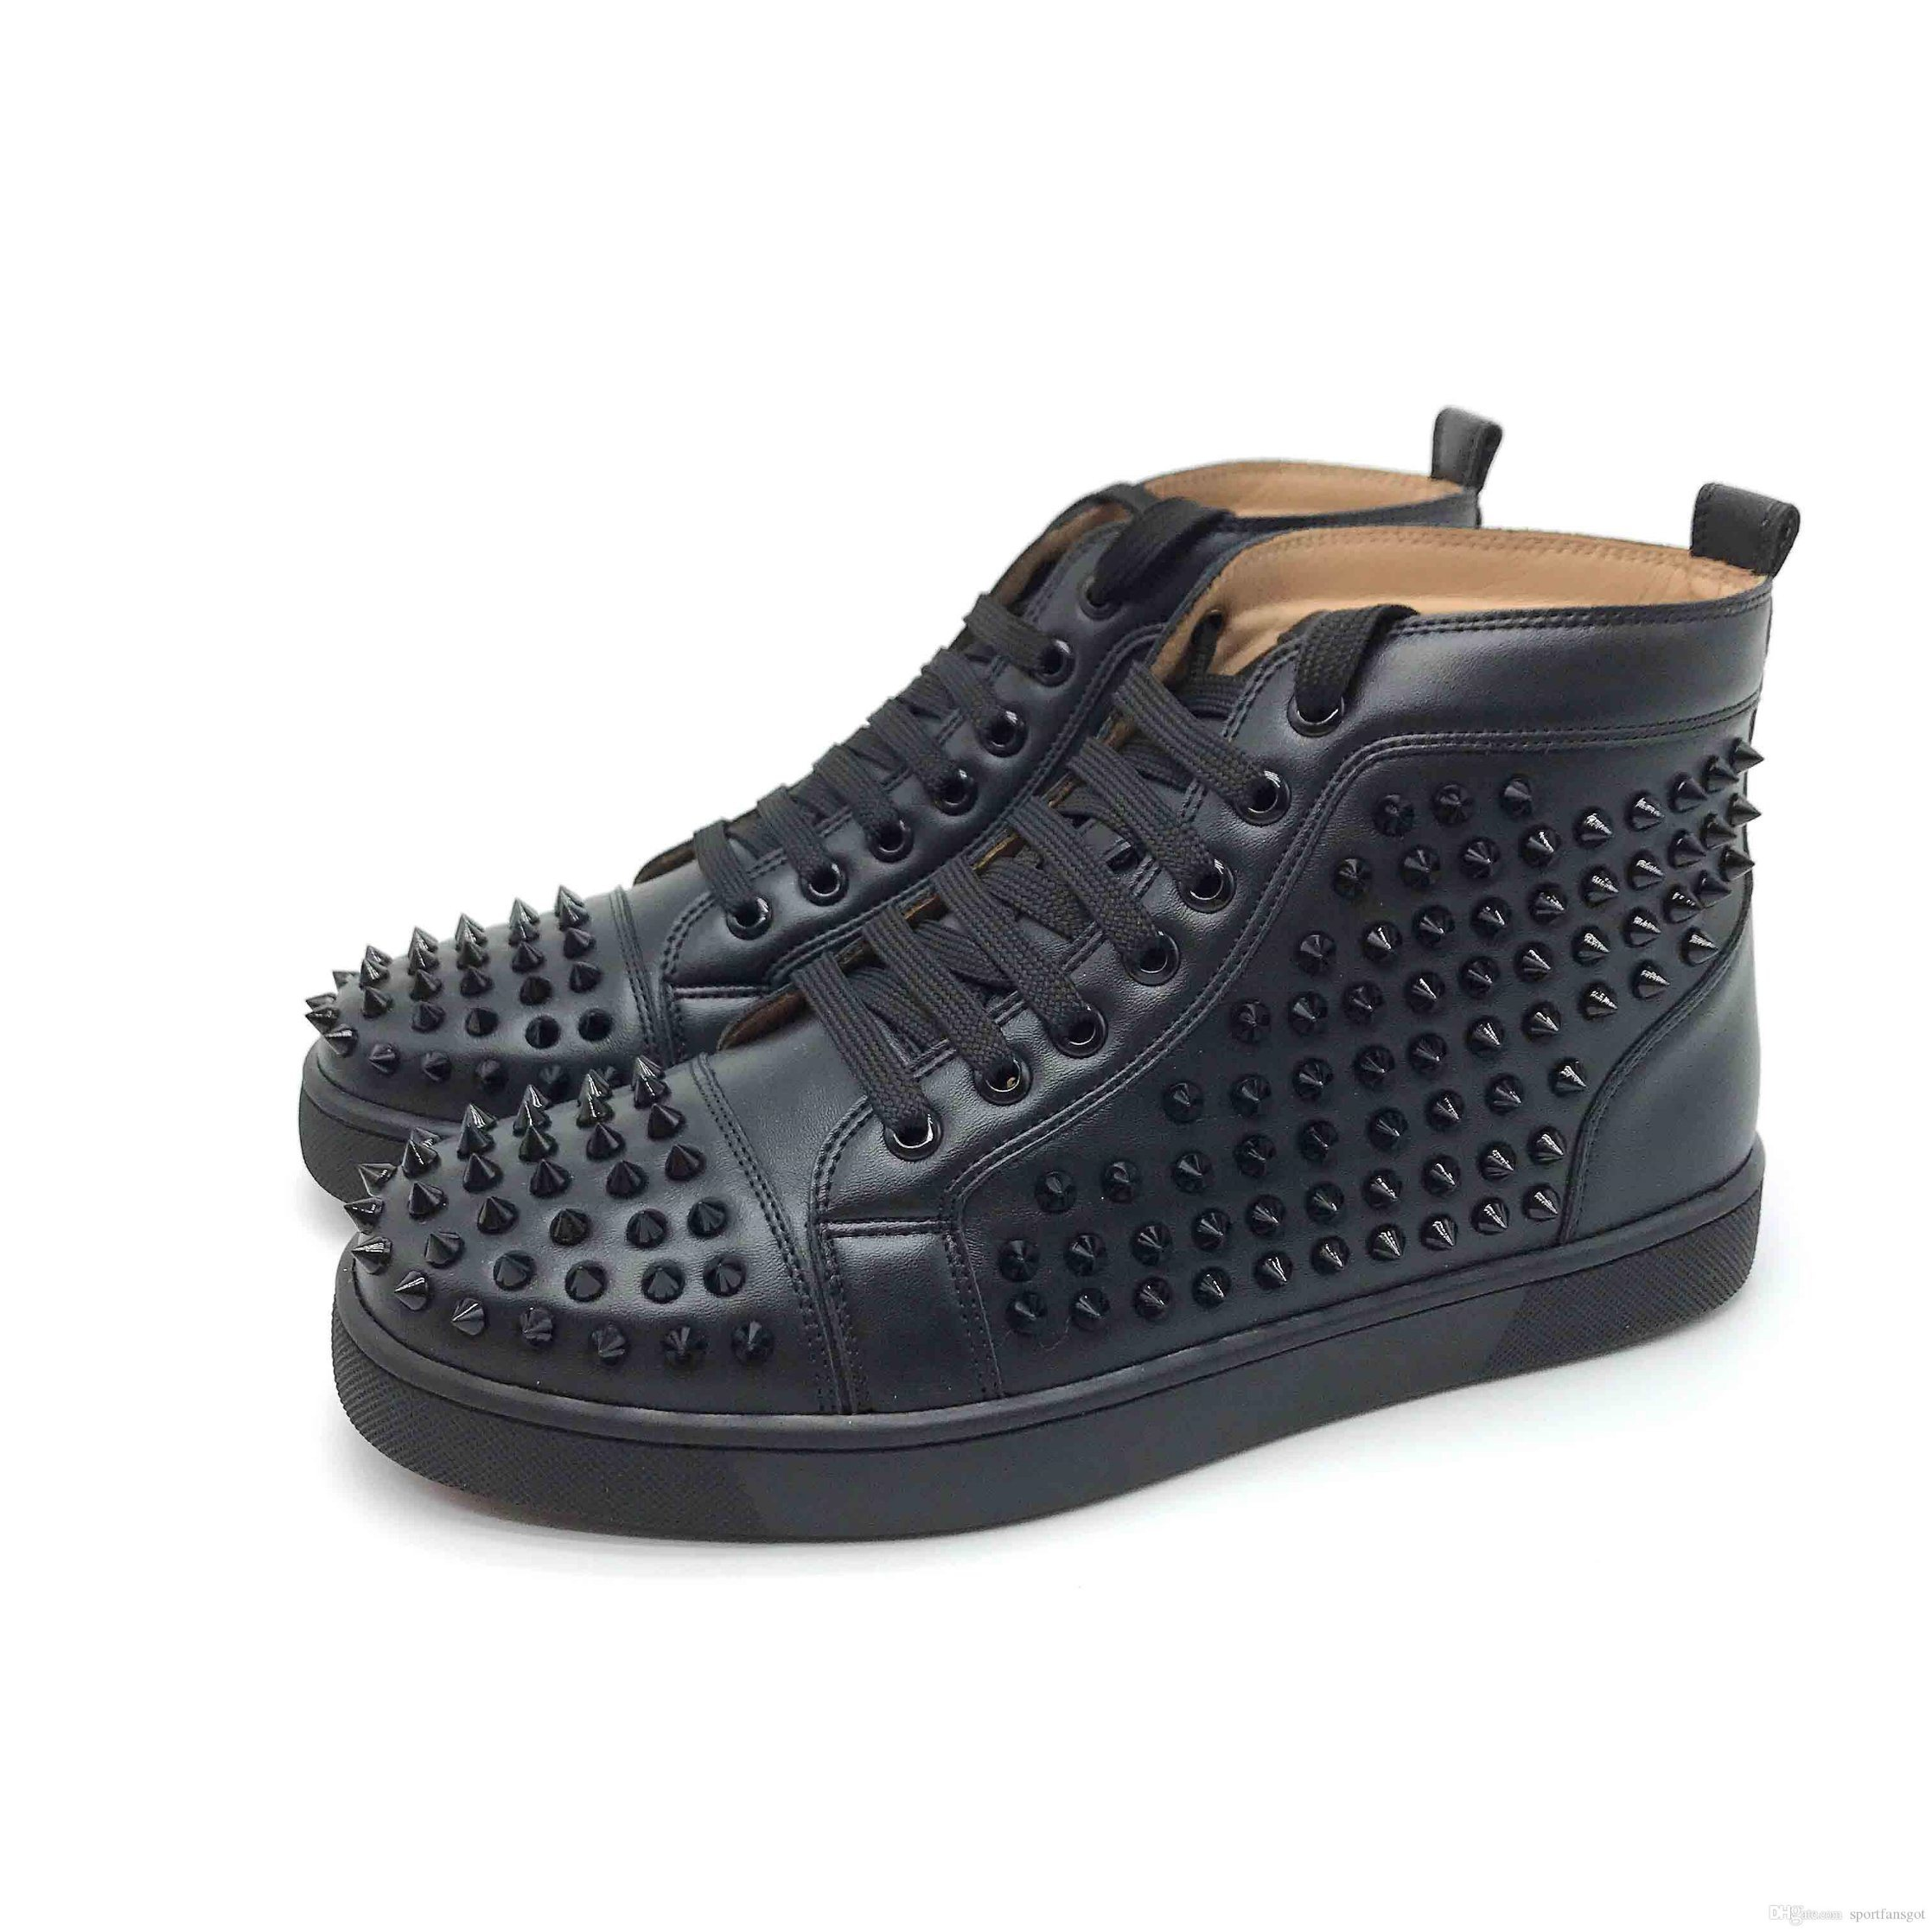 newest 1aaae 0f74c [Hot Item] Designer Shoes Spike Red Bottom Sneakers Leather Shoes Junior  Calf Casual Loafer Shoes Suede Luxury Men Women Size with Box Dust Bag